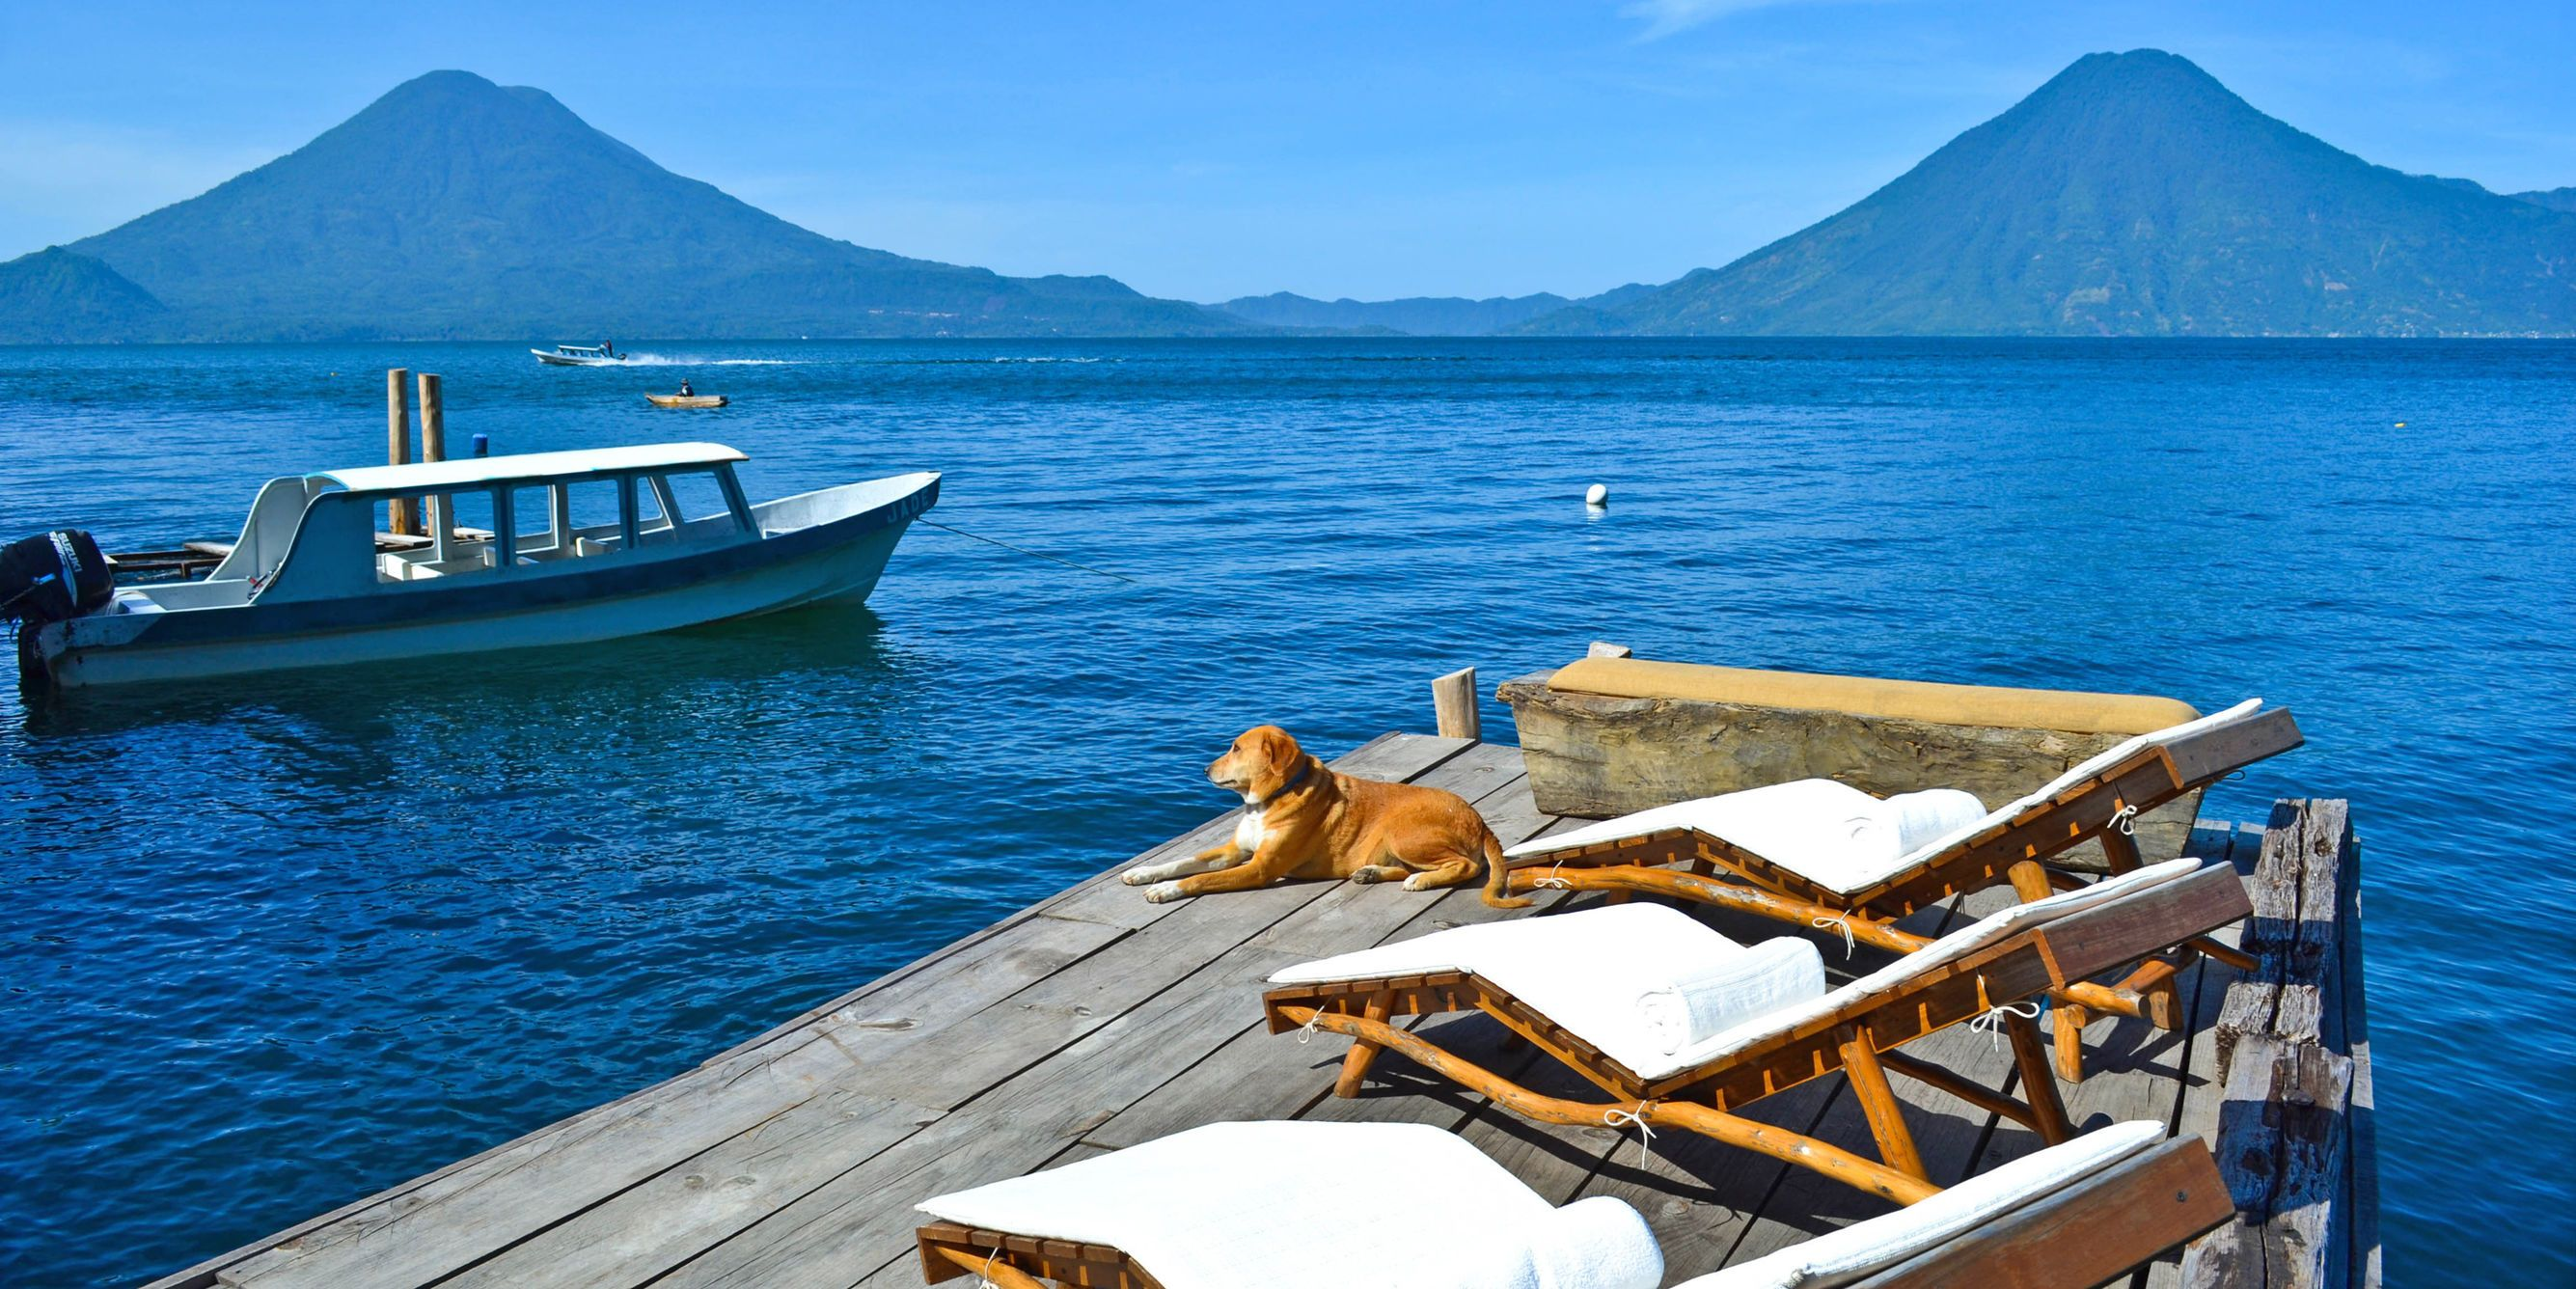 Laguna Lodge Eco Resort Nature Reserve Santa Cruz La Guatemala Ocean Scenic Views Sea Water Sky Mountain Boat Wooden S Pier Coast Watercraft